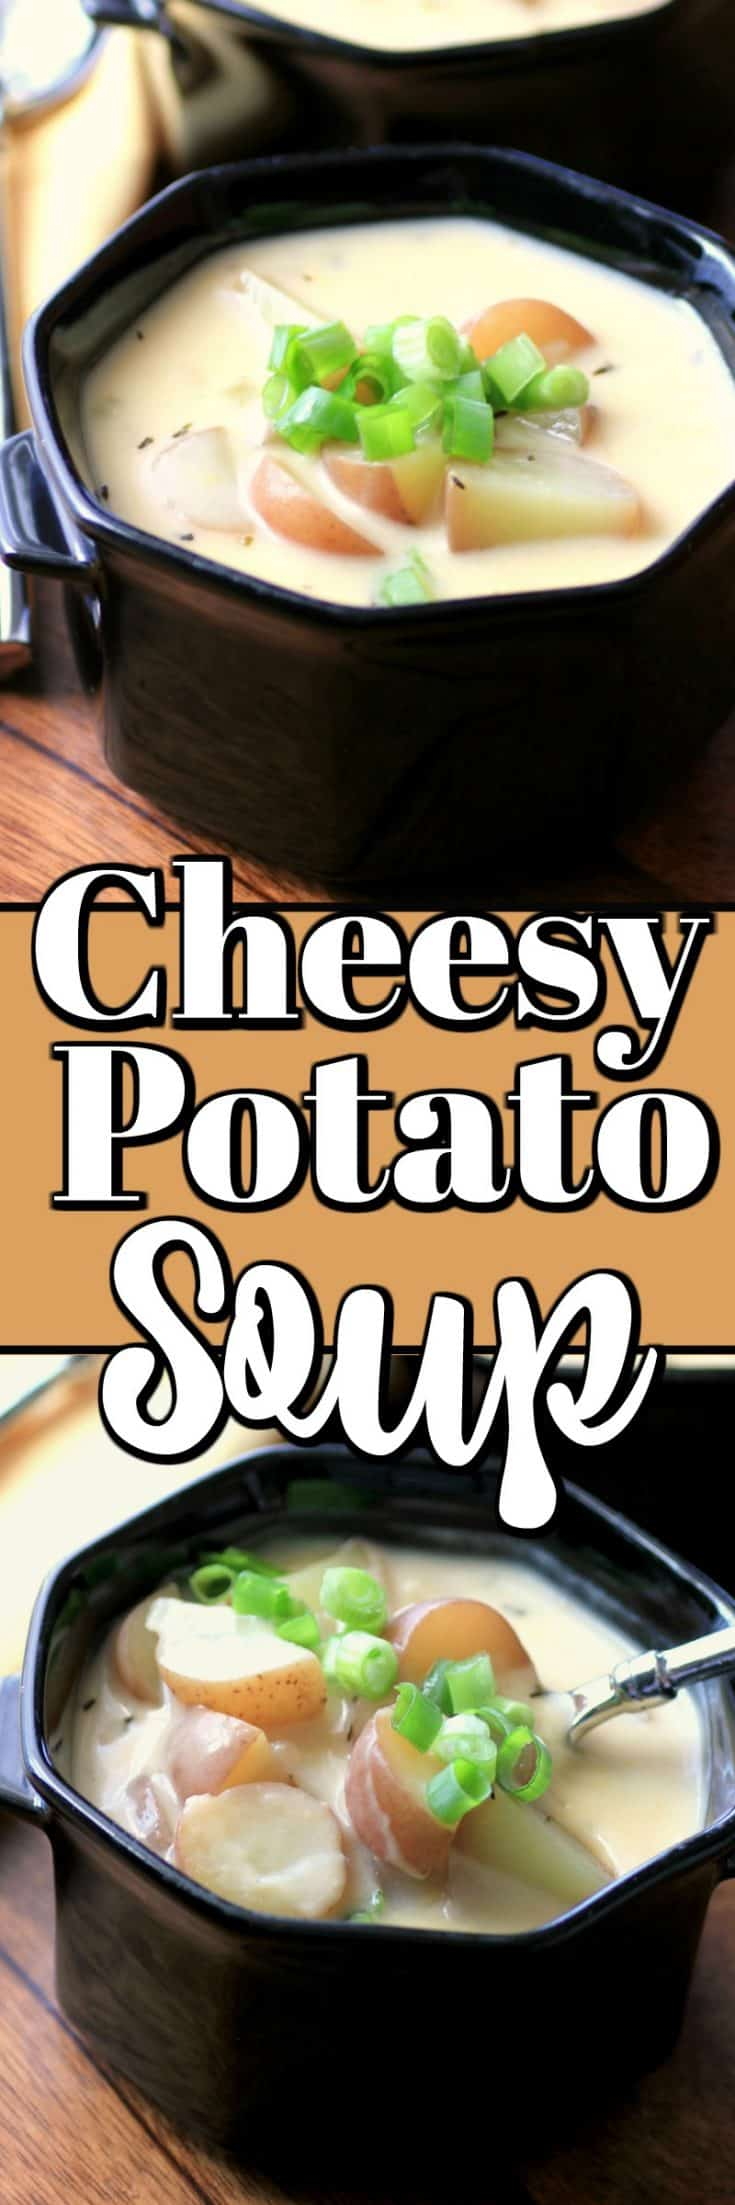 You can make this easy Cheesy Potato Soup for any night of the week and get rave reviews from your family. It is a quick and easy meal made in 20 minutes!! #potatosoup #cheesysoup